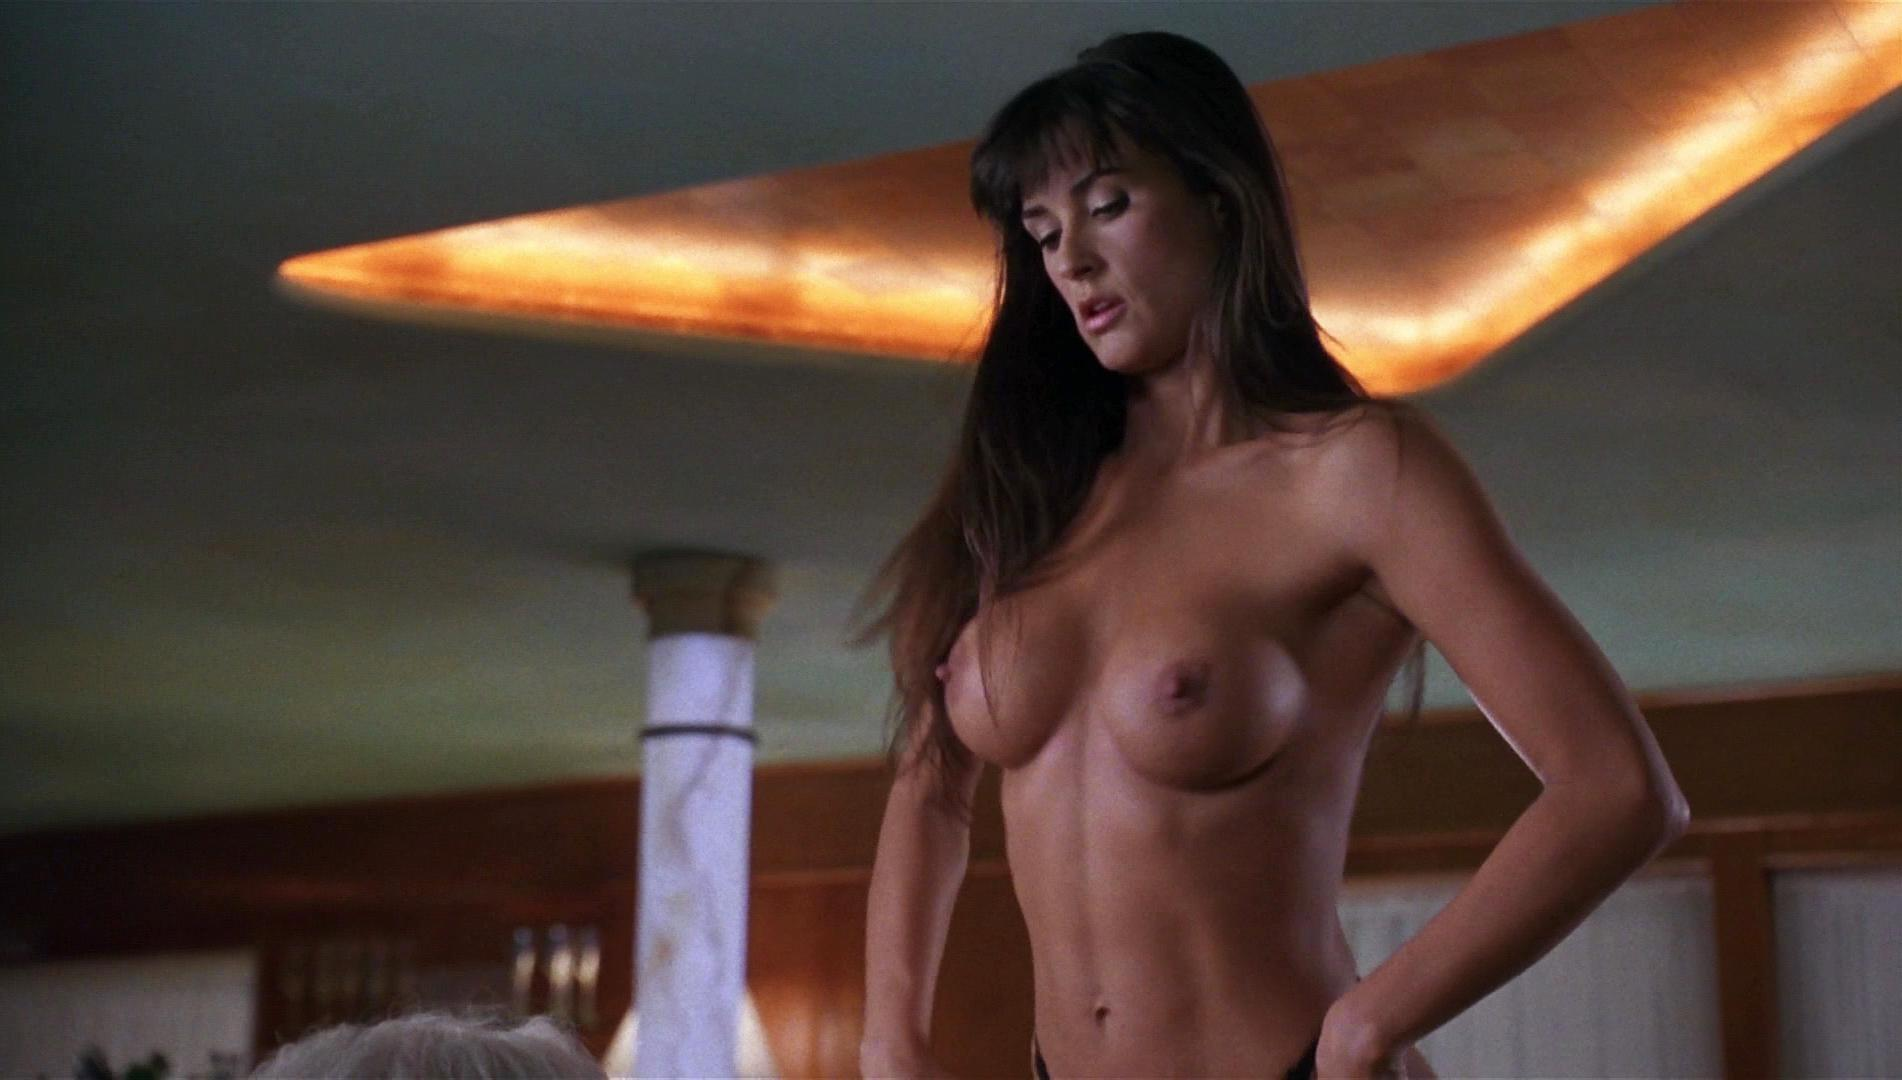 from Chad demi moore sex scenes